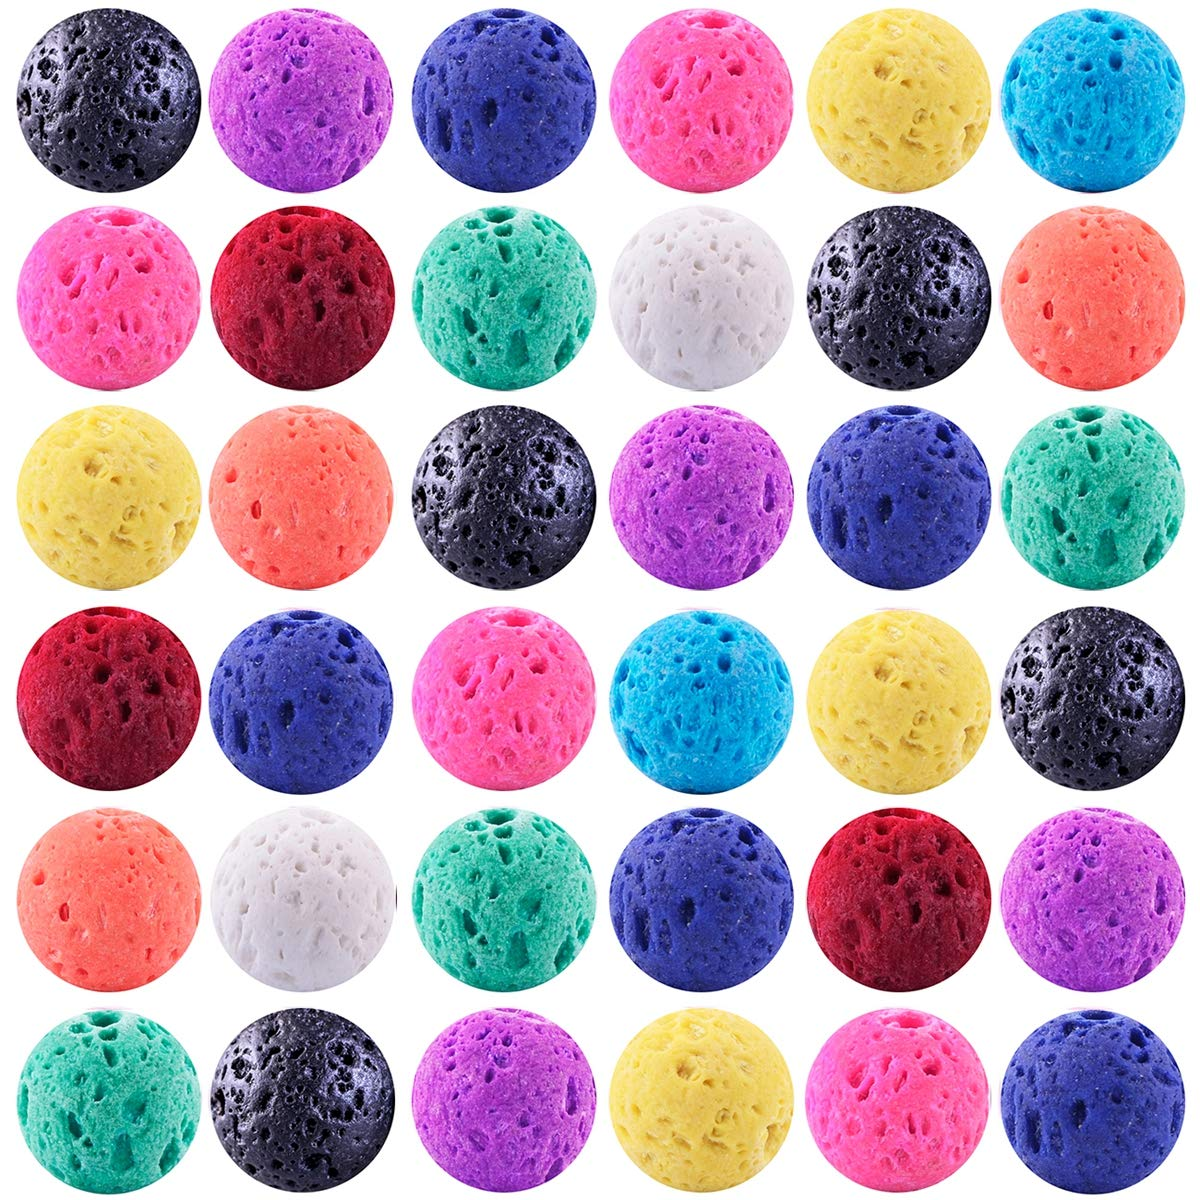 Color Lava Stone Beads Mixed Box Kit 200pcs 8mm Round Loose Chakra Rock Beads Random Color for Essential Oil Yoga Diffuser Bracelet Necklace Jewelry Making (Color Lava Stone Beads Mix Kit) by Cmidy